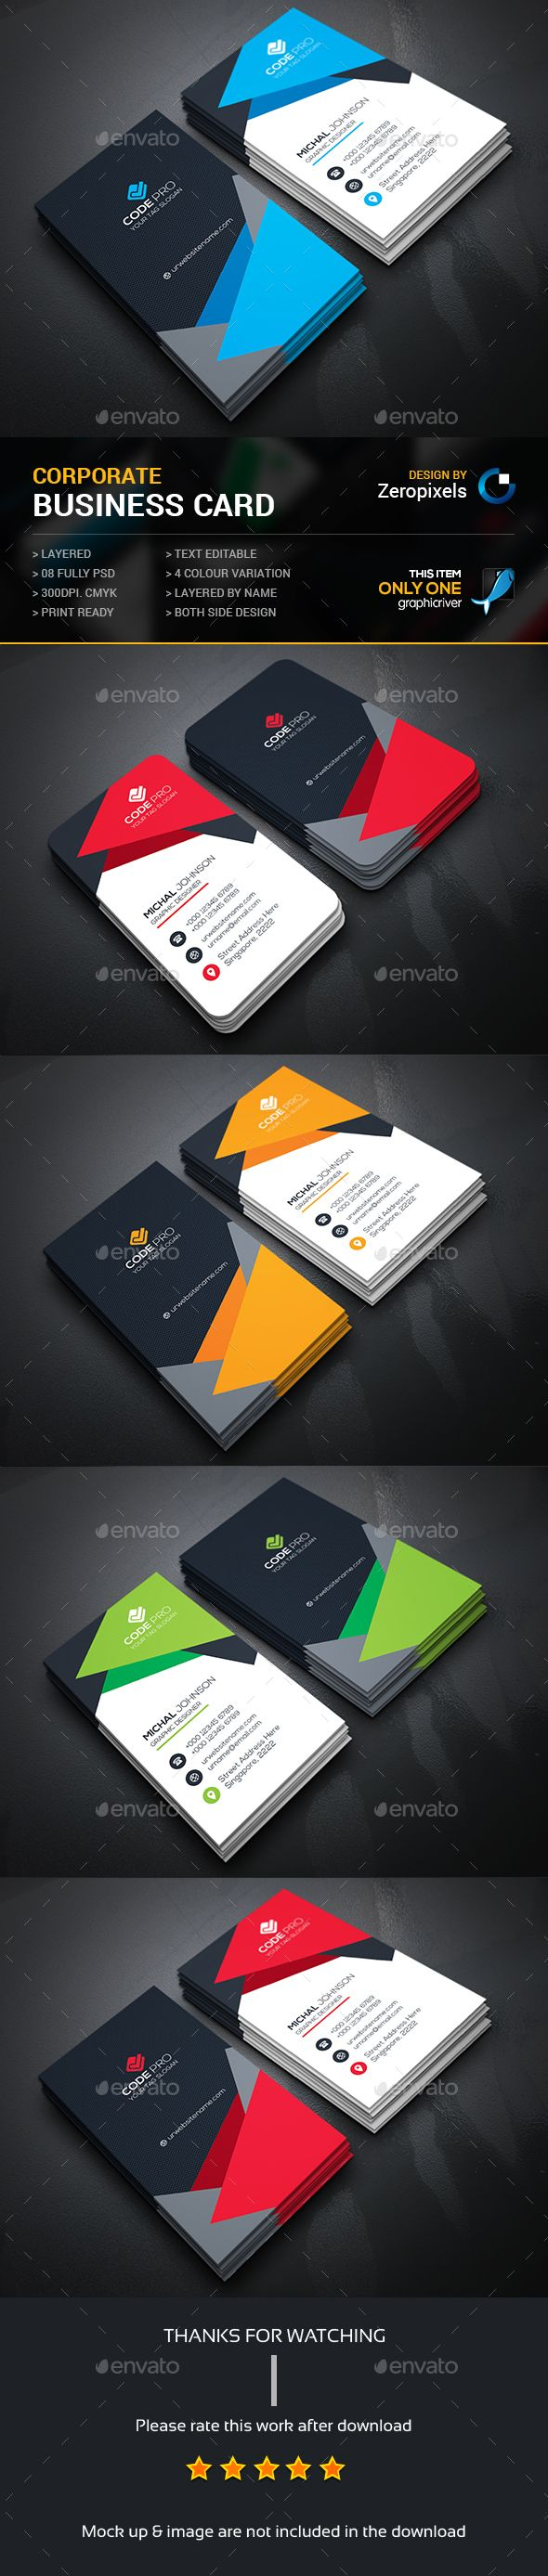 16 Best New Keller Williams Business Card Templates Images On